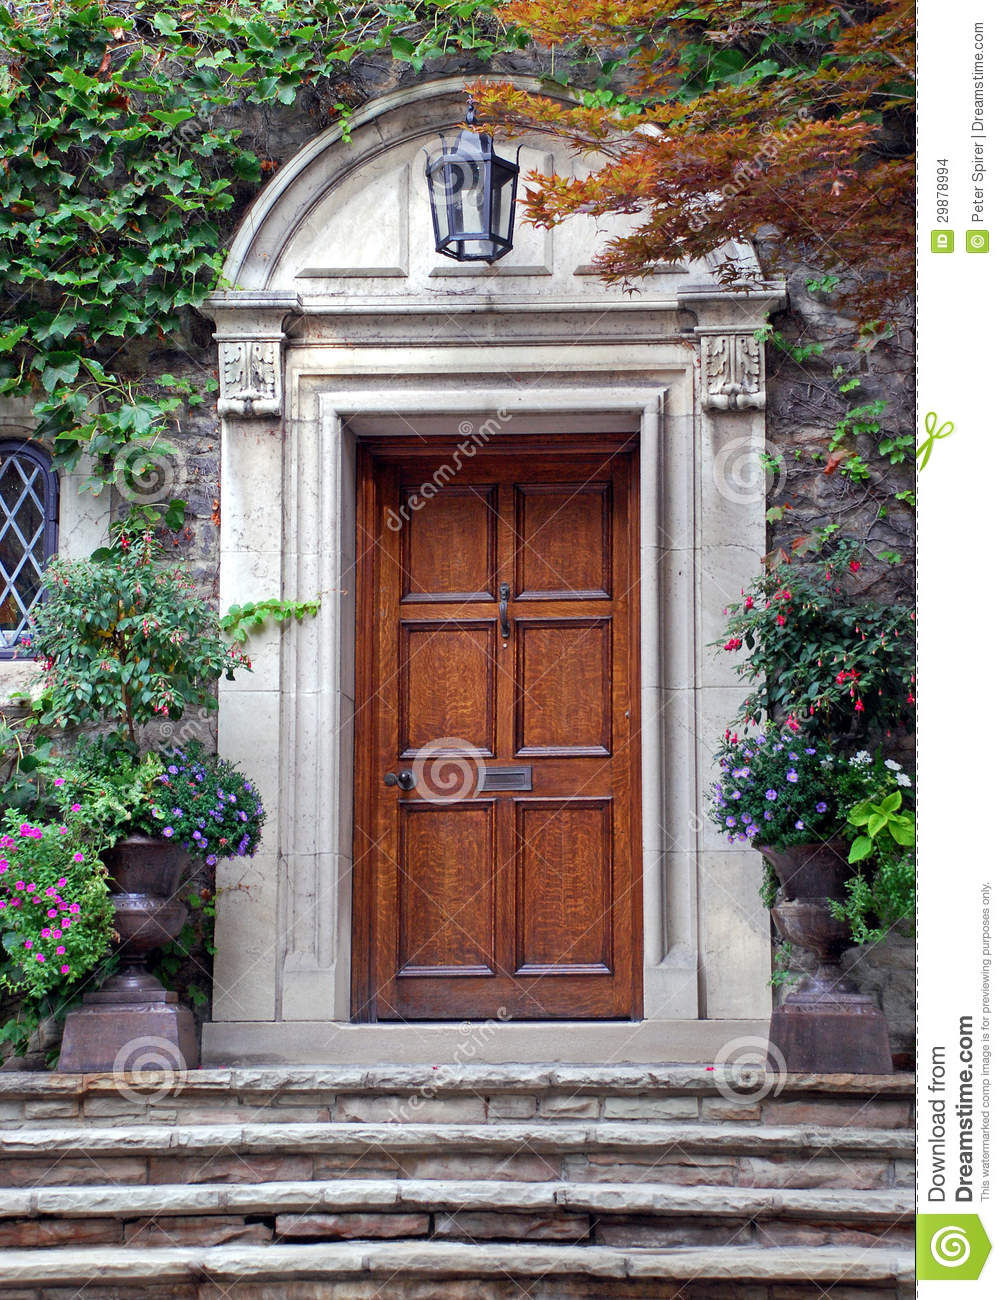 Elegant Front Door With Ivy Stock Images - Image: 29878994